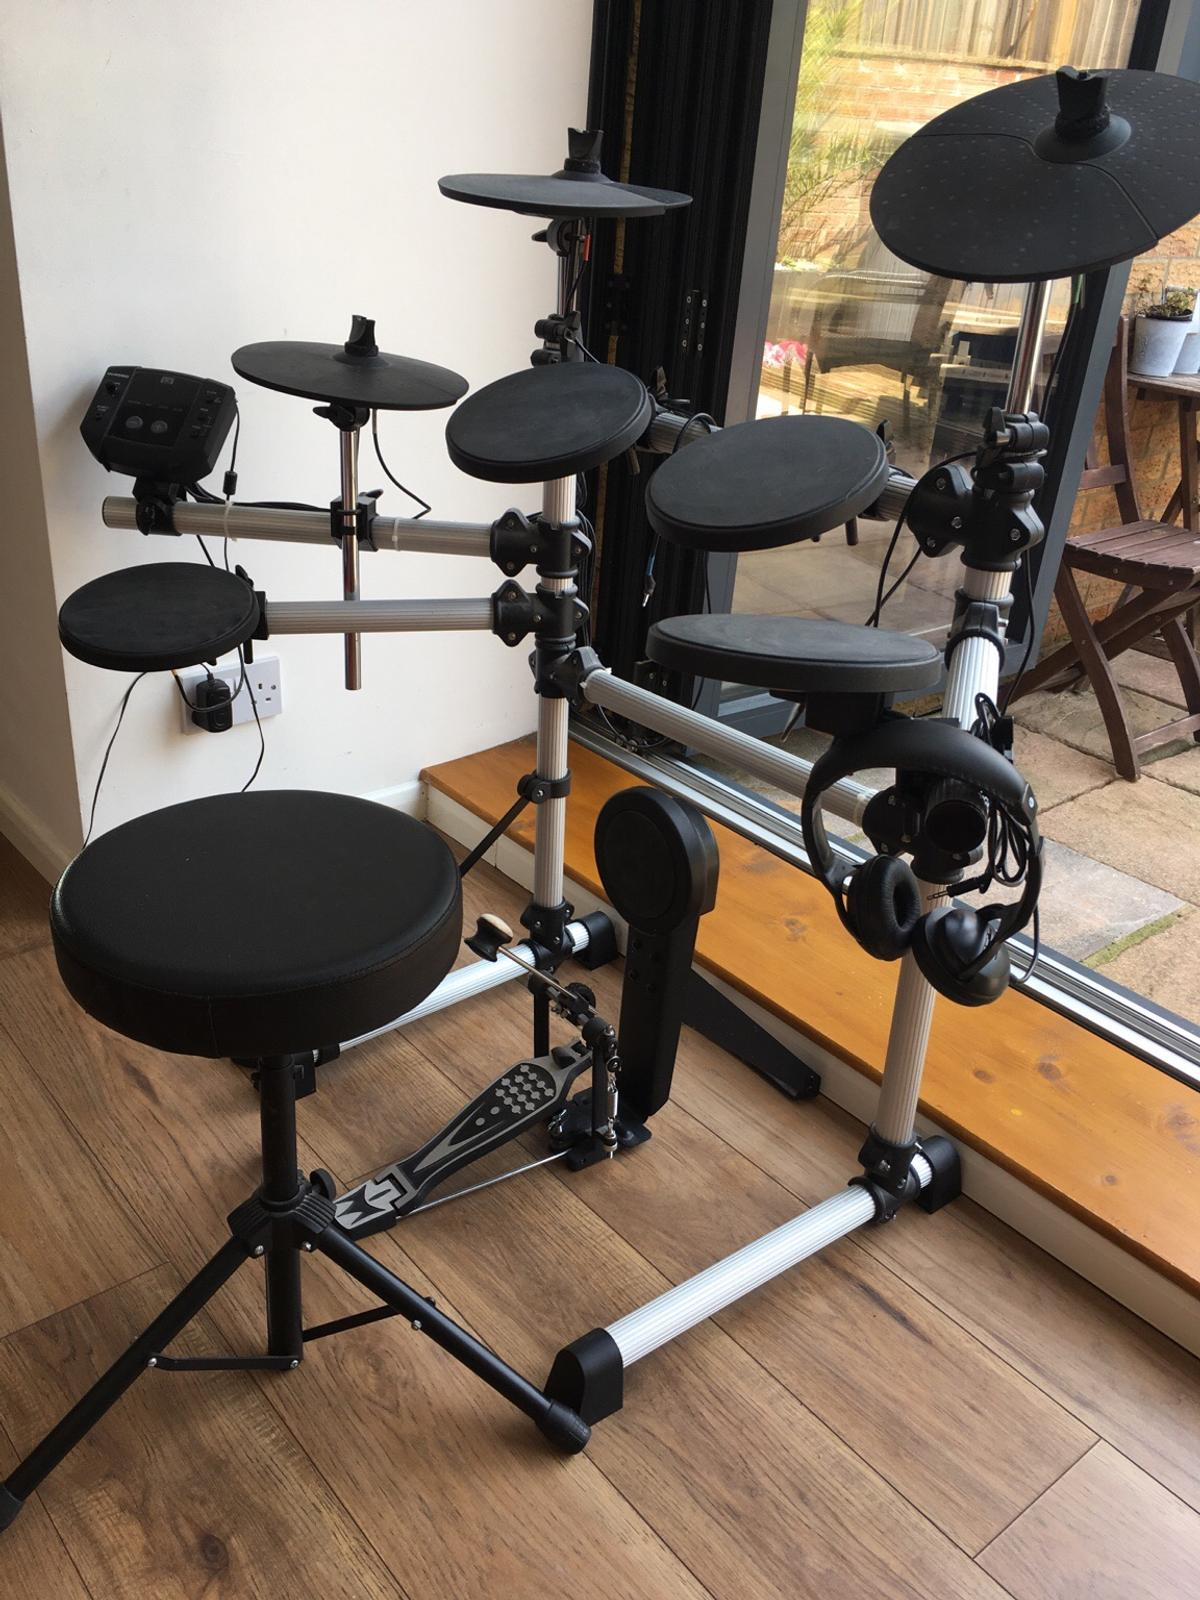 Session Pro DD405D electronic drum kit in BA3 Norton for